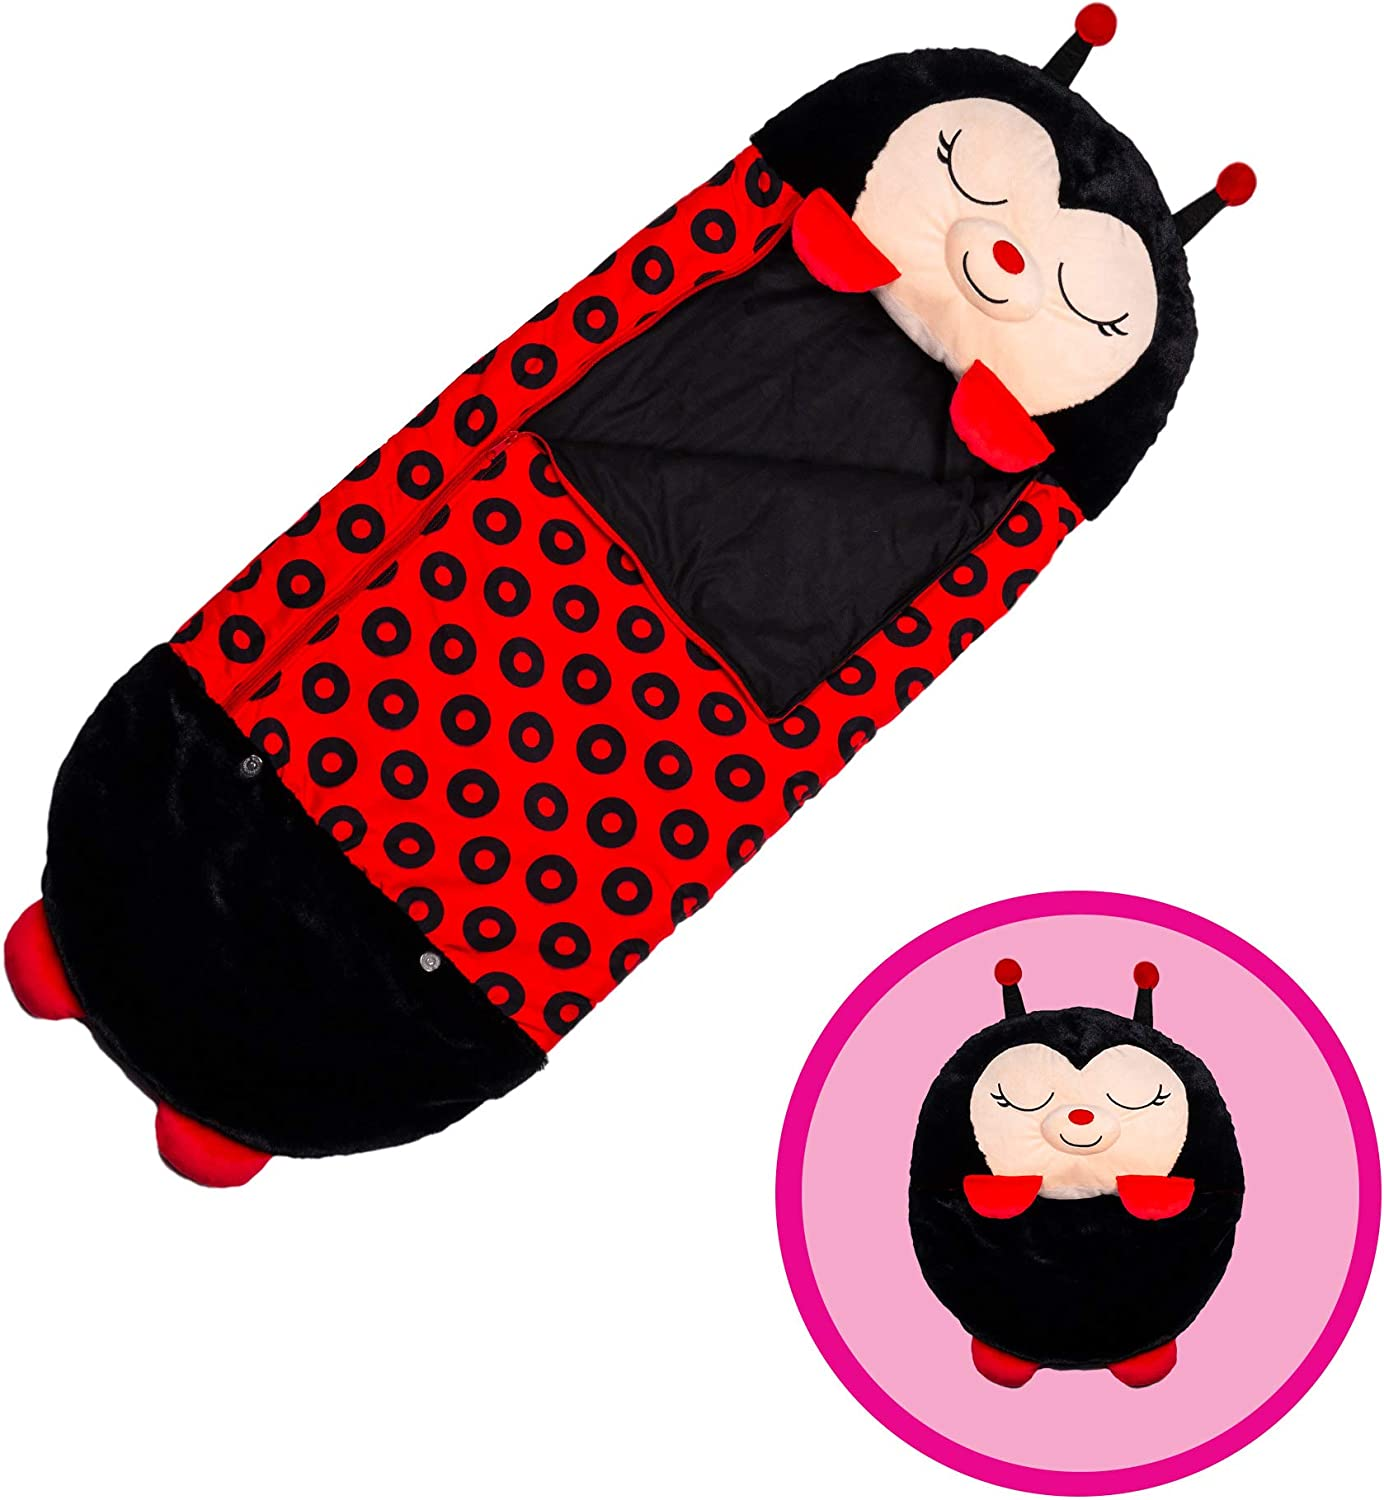 """54 x 20/"""" Washable 2-in-1 Pillow Warm Sleeping Bag Animal-shape Pillow Comfortable Super Soft Cushion for 4-Season Happy Nappers Pillow"""